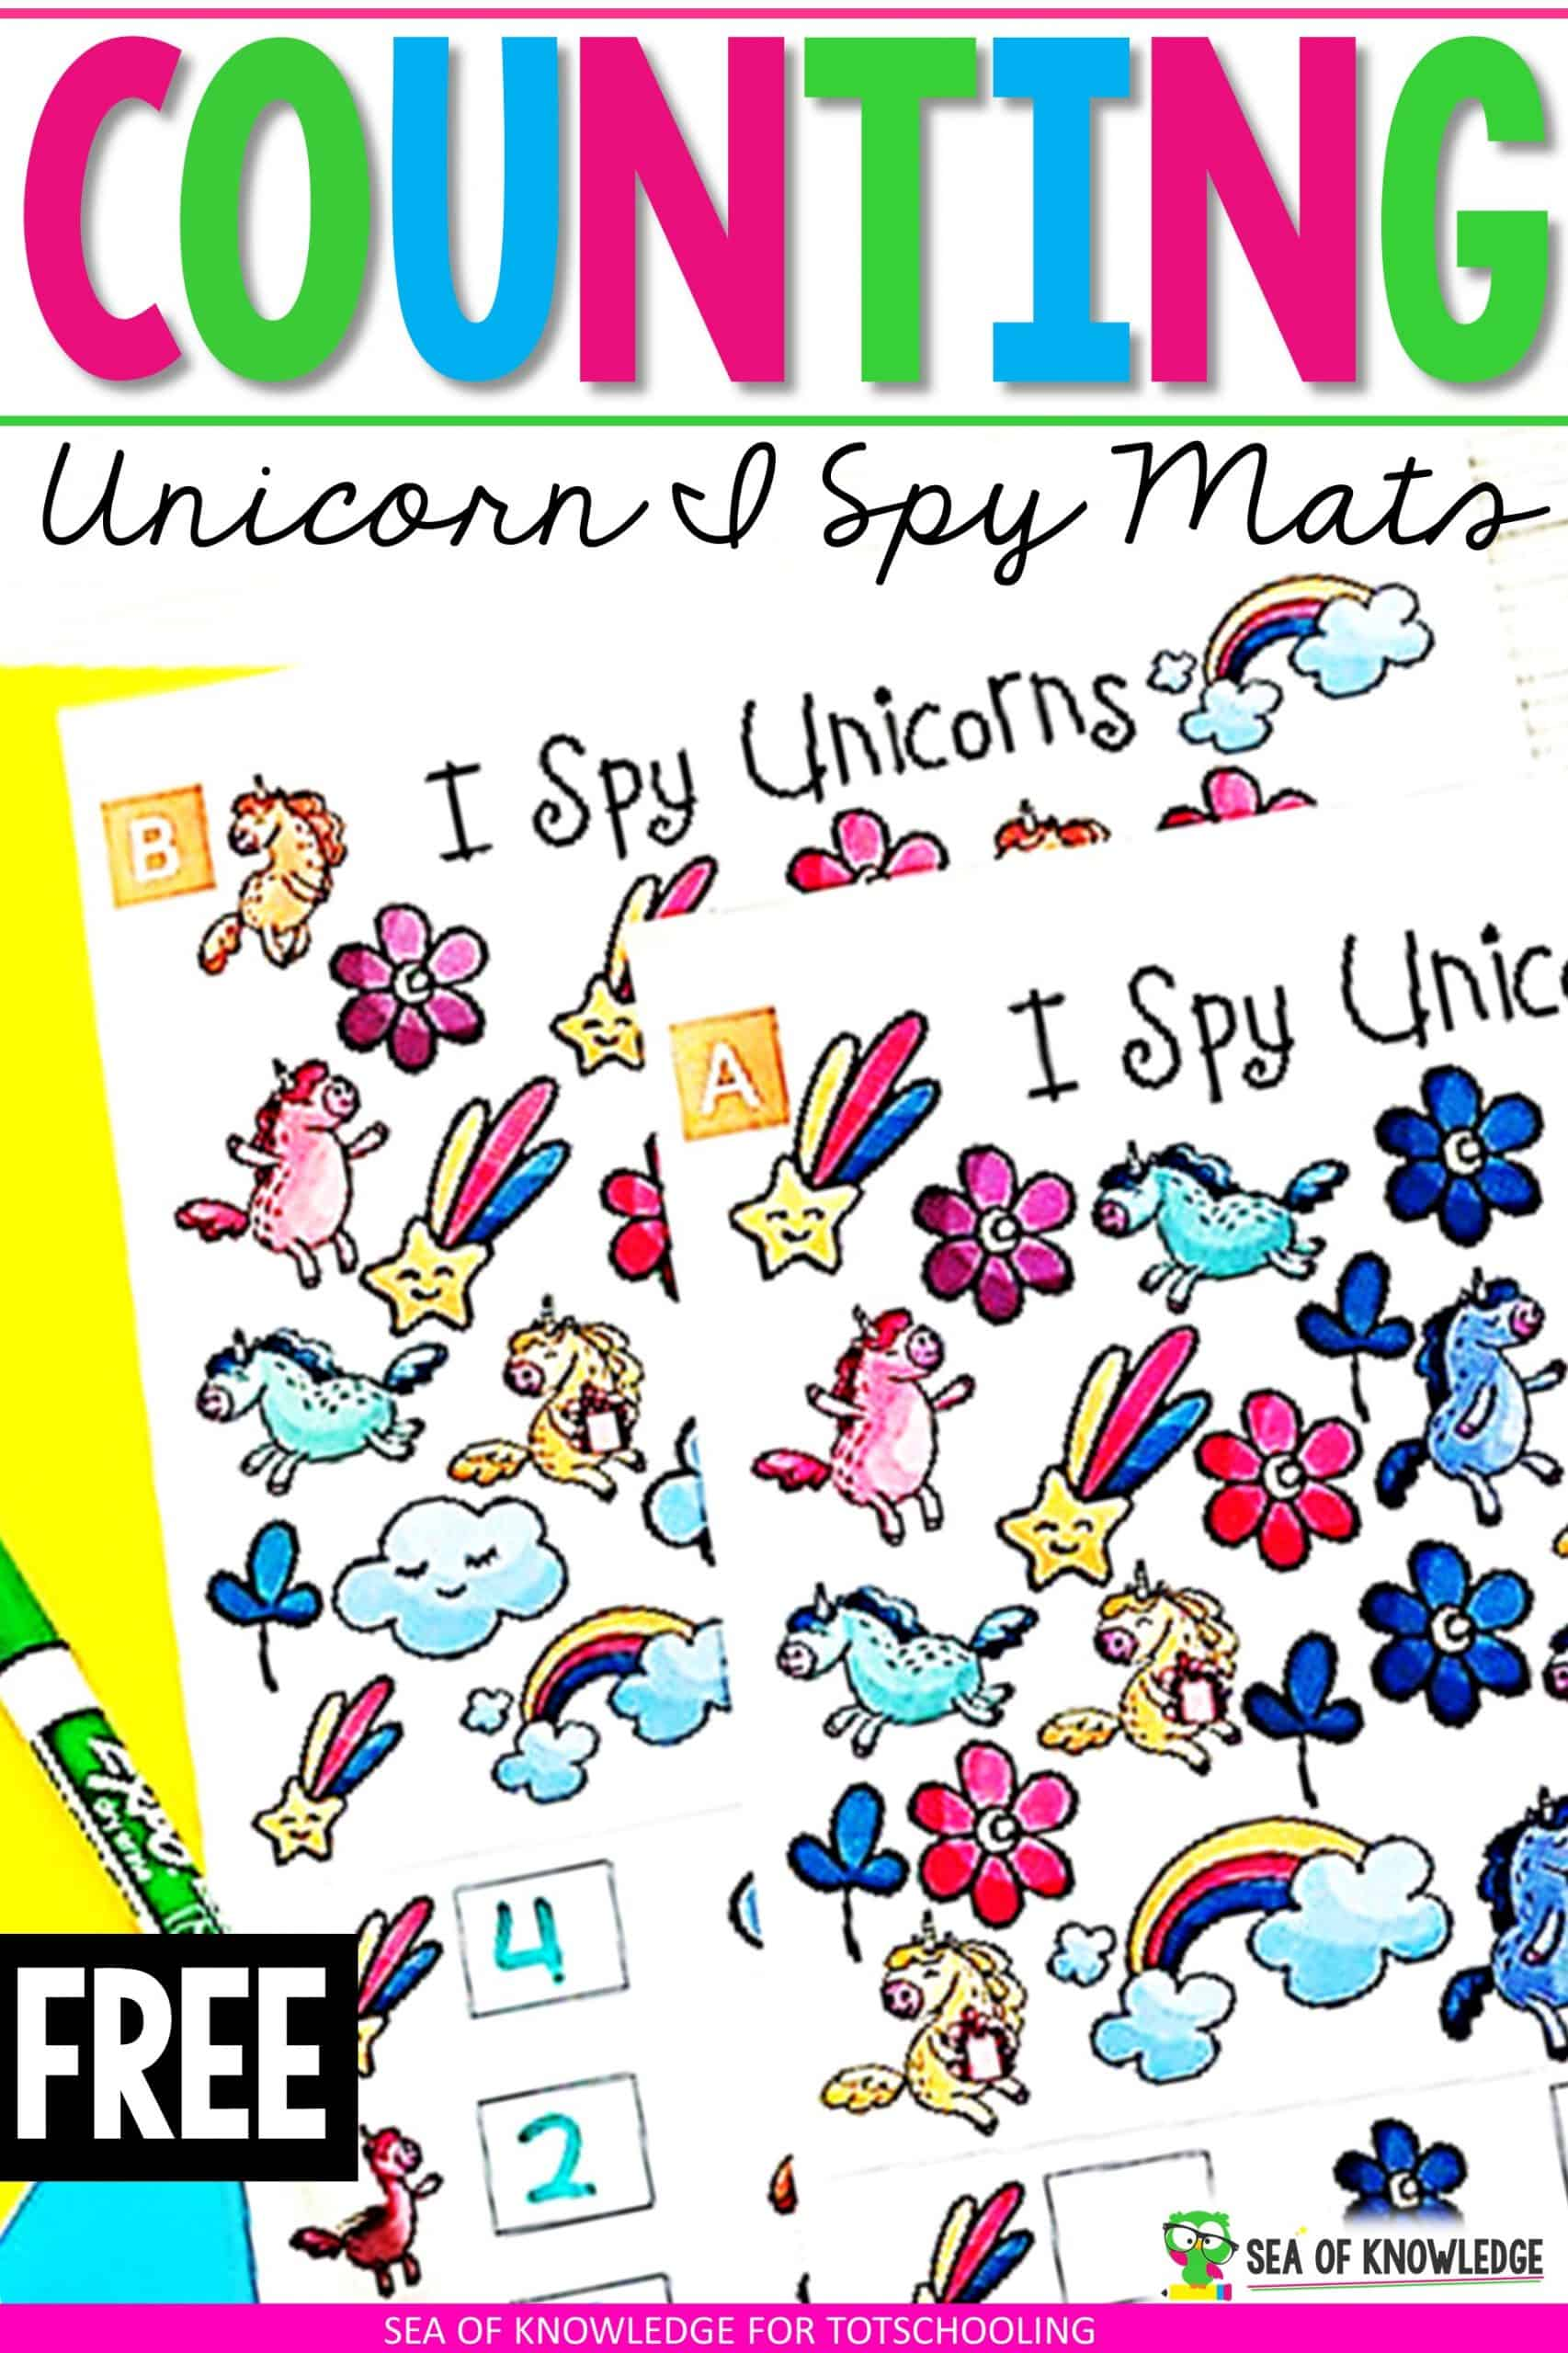 This Unicorn I Spy Teaching Number Sense Printable Mats will sure be a hit with your little learners! Looking for a fun way to get kids to count and show their numbers? These fun unicorn themed mats are perfect for that. Learners will count to find the number of each unicorn image on the mat and then write the digit below.